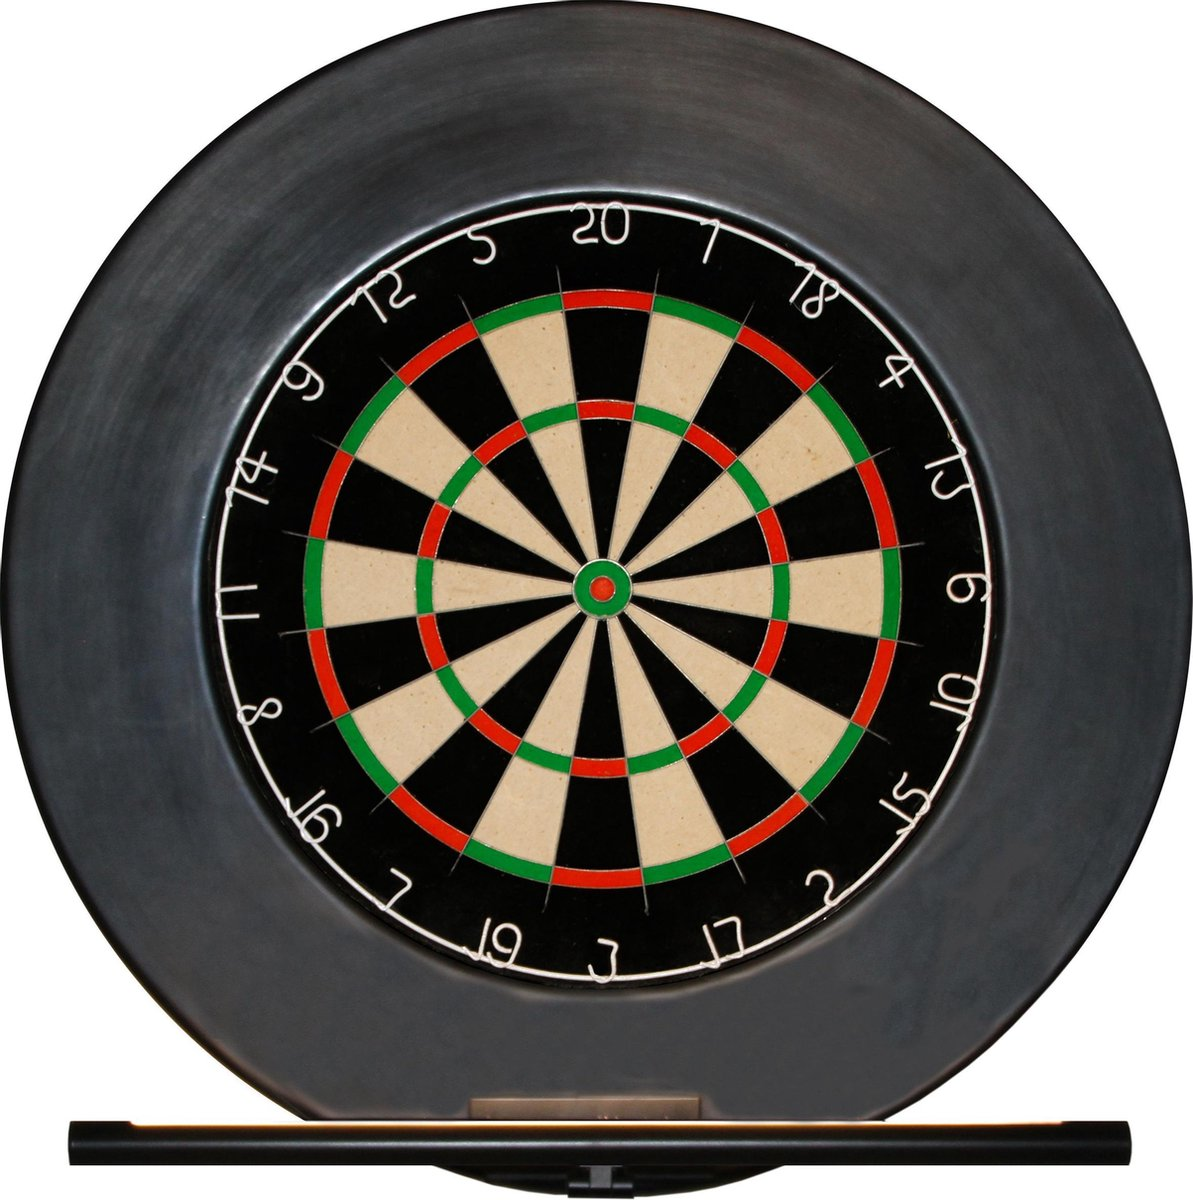 Dragon Darts Ligero - dartbord verlichting - inclusief rubber - surround ring - en Focus II - dartbord